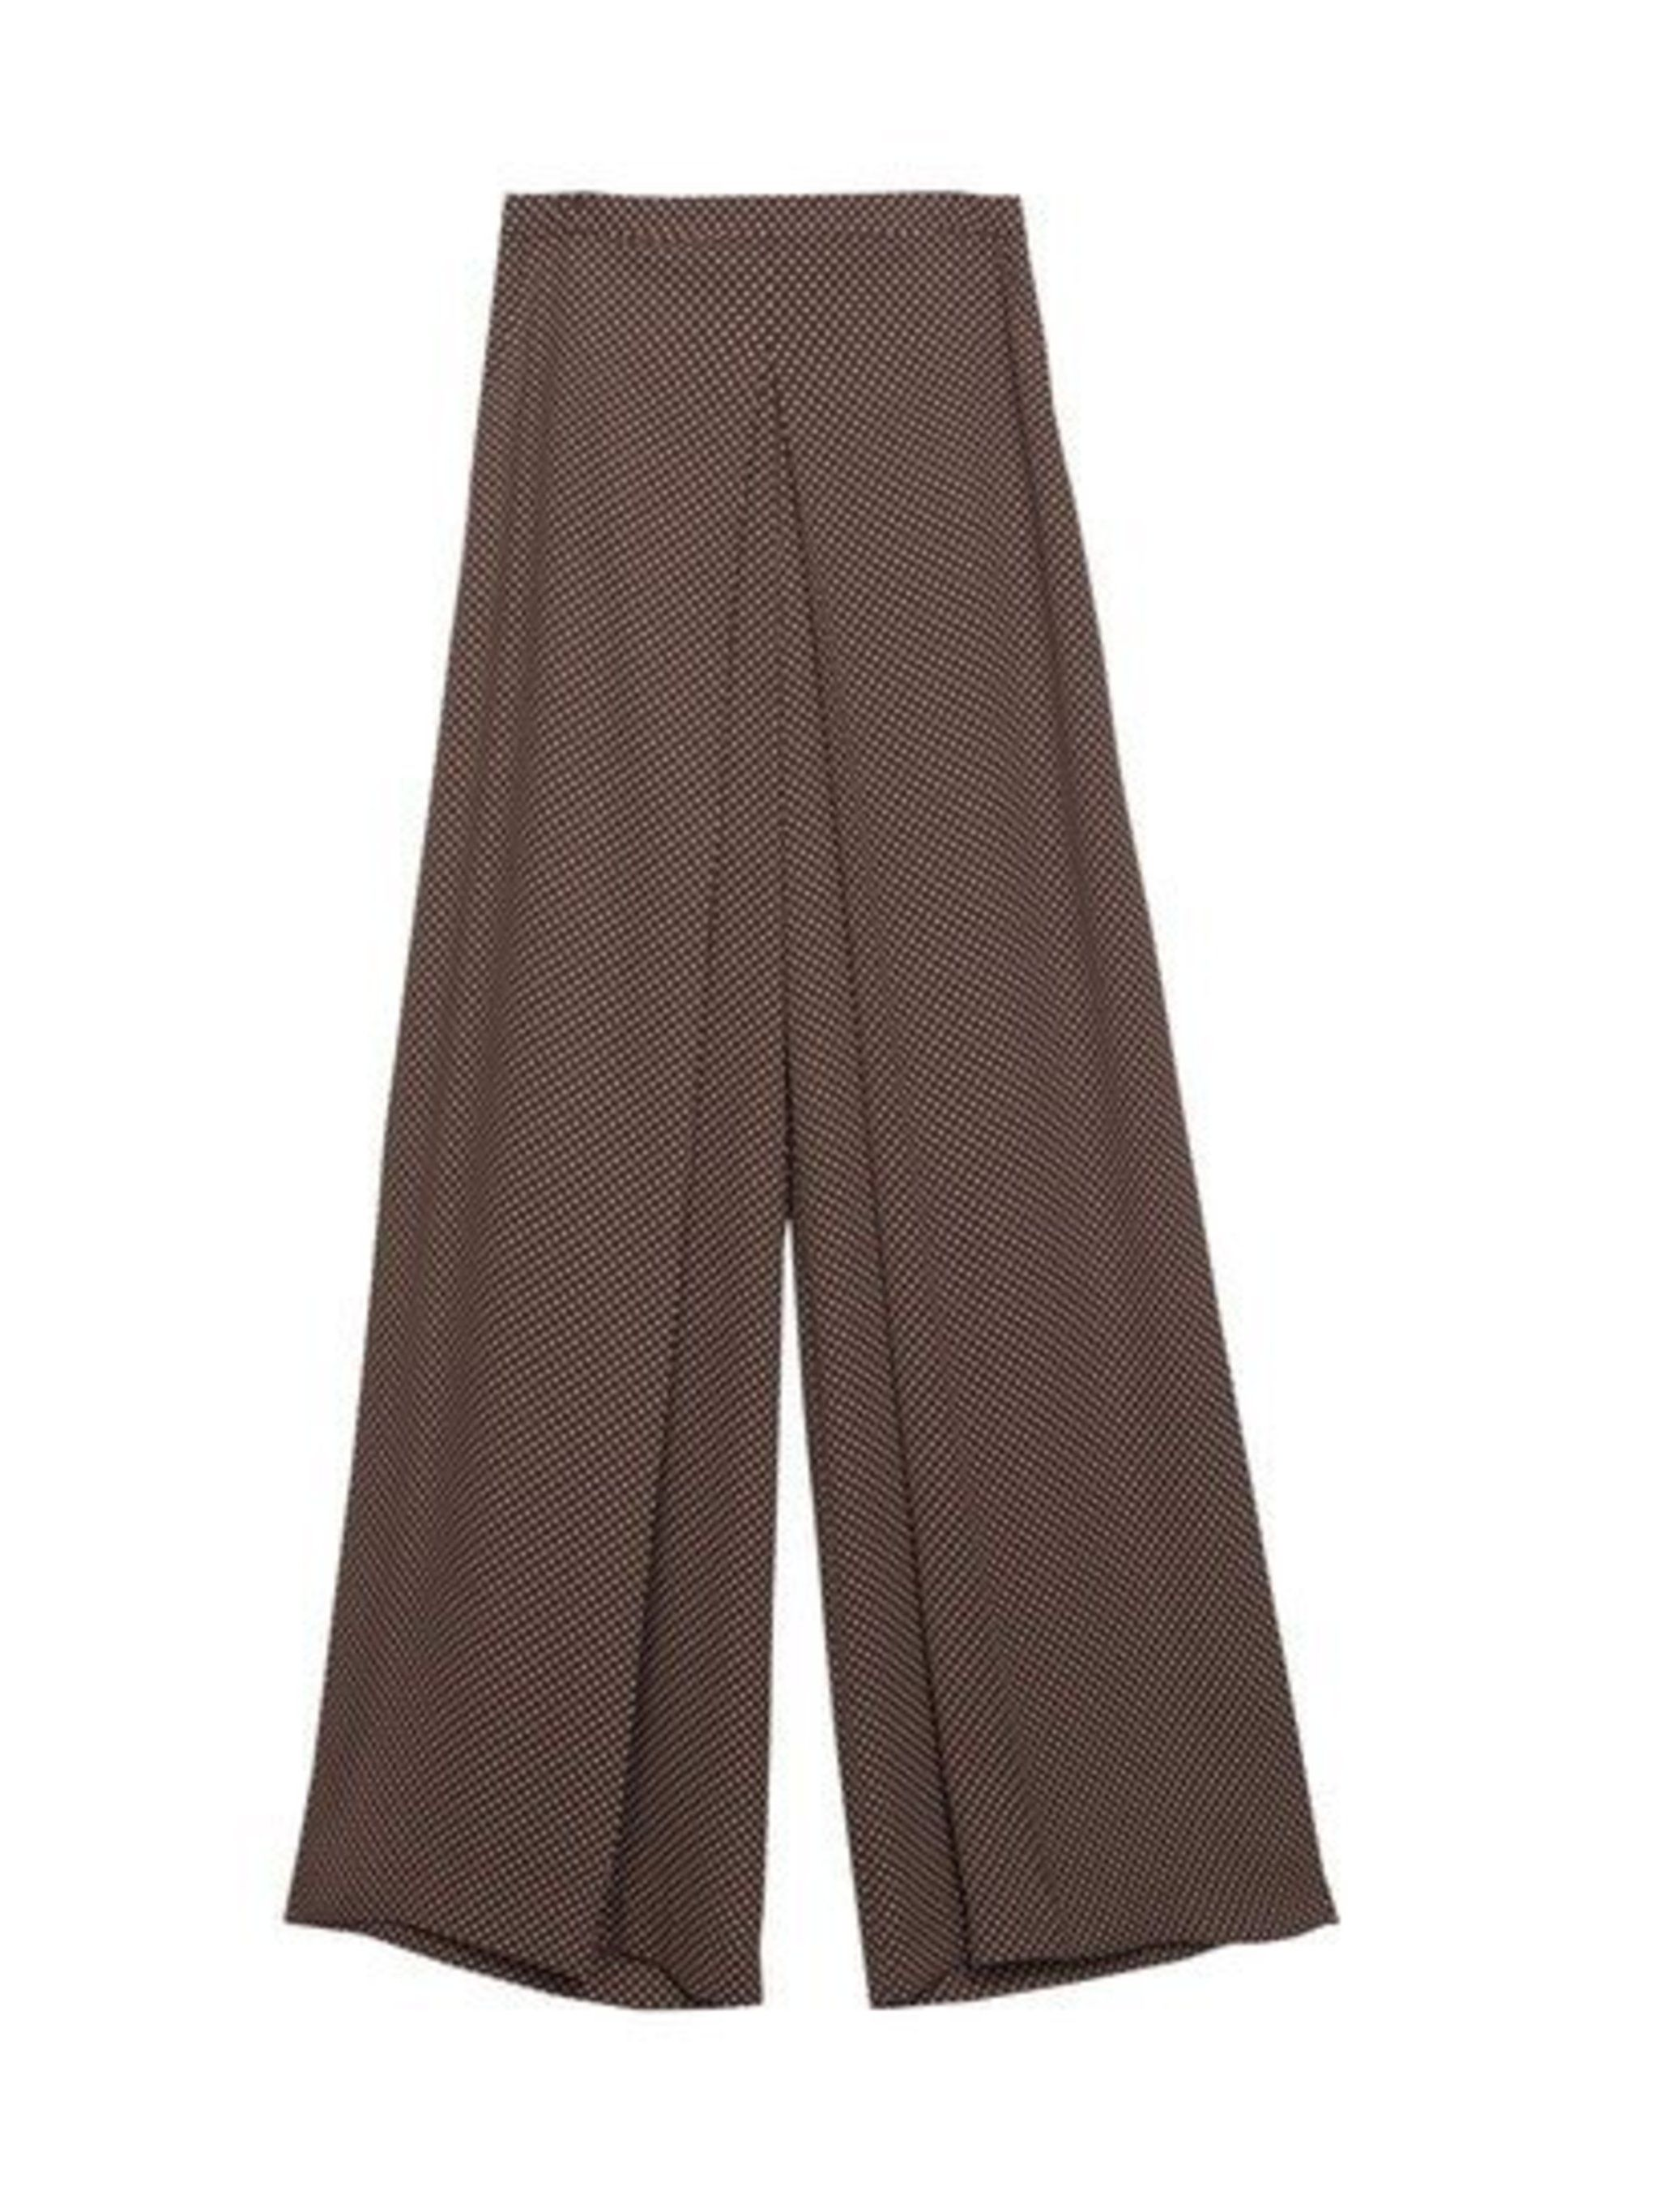 Pair wide-leg trousers with a cropped knit.  Zara trousers, £29.99